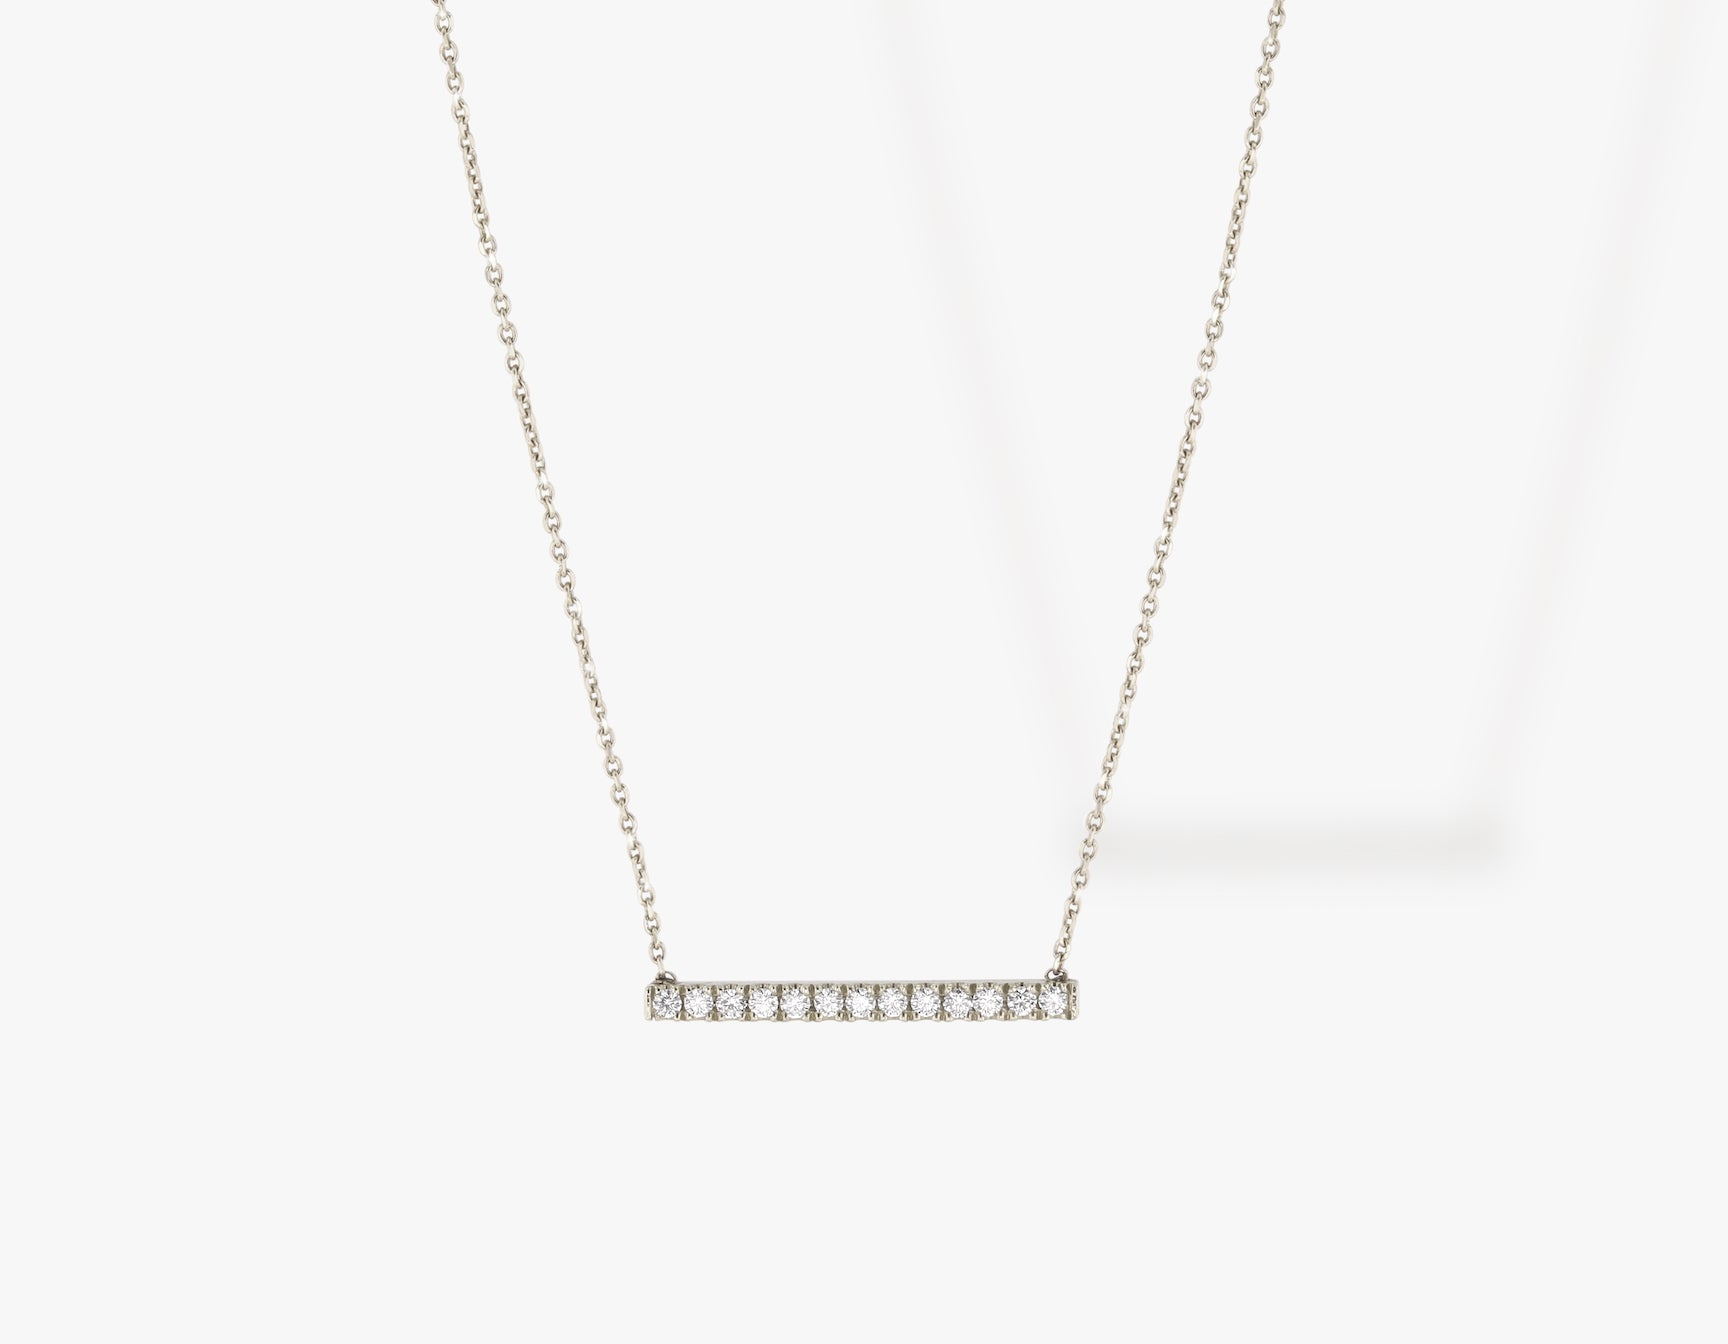 Vrai solid gold Pave Line Necklace, 14K White Gold